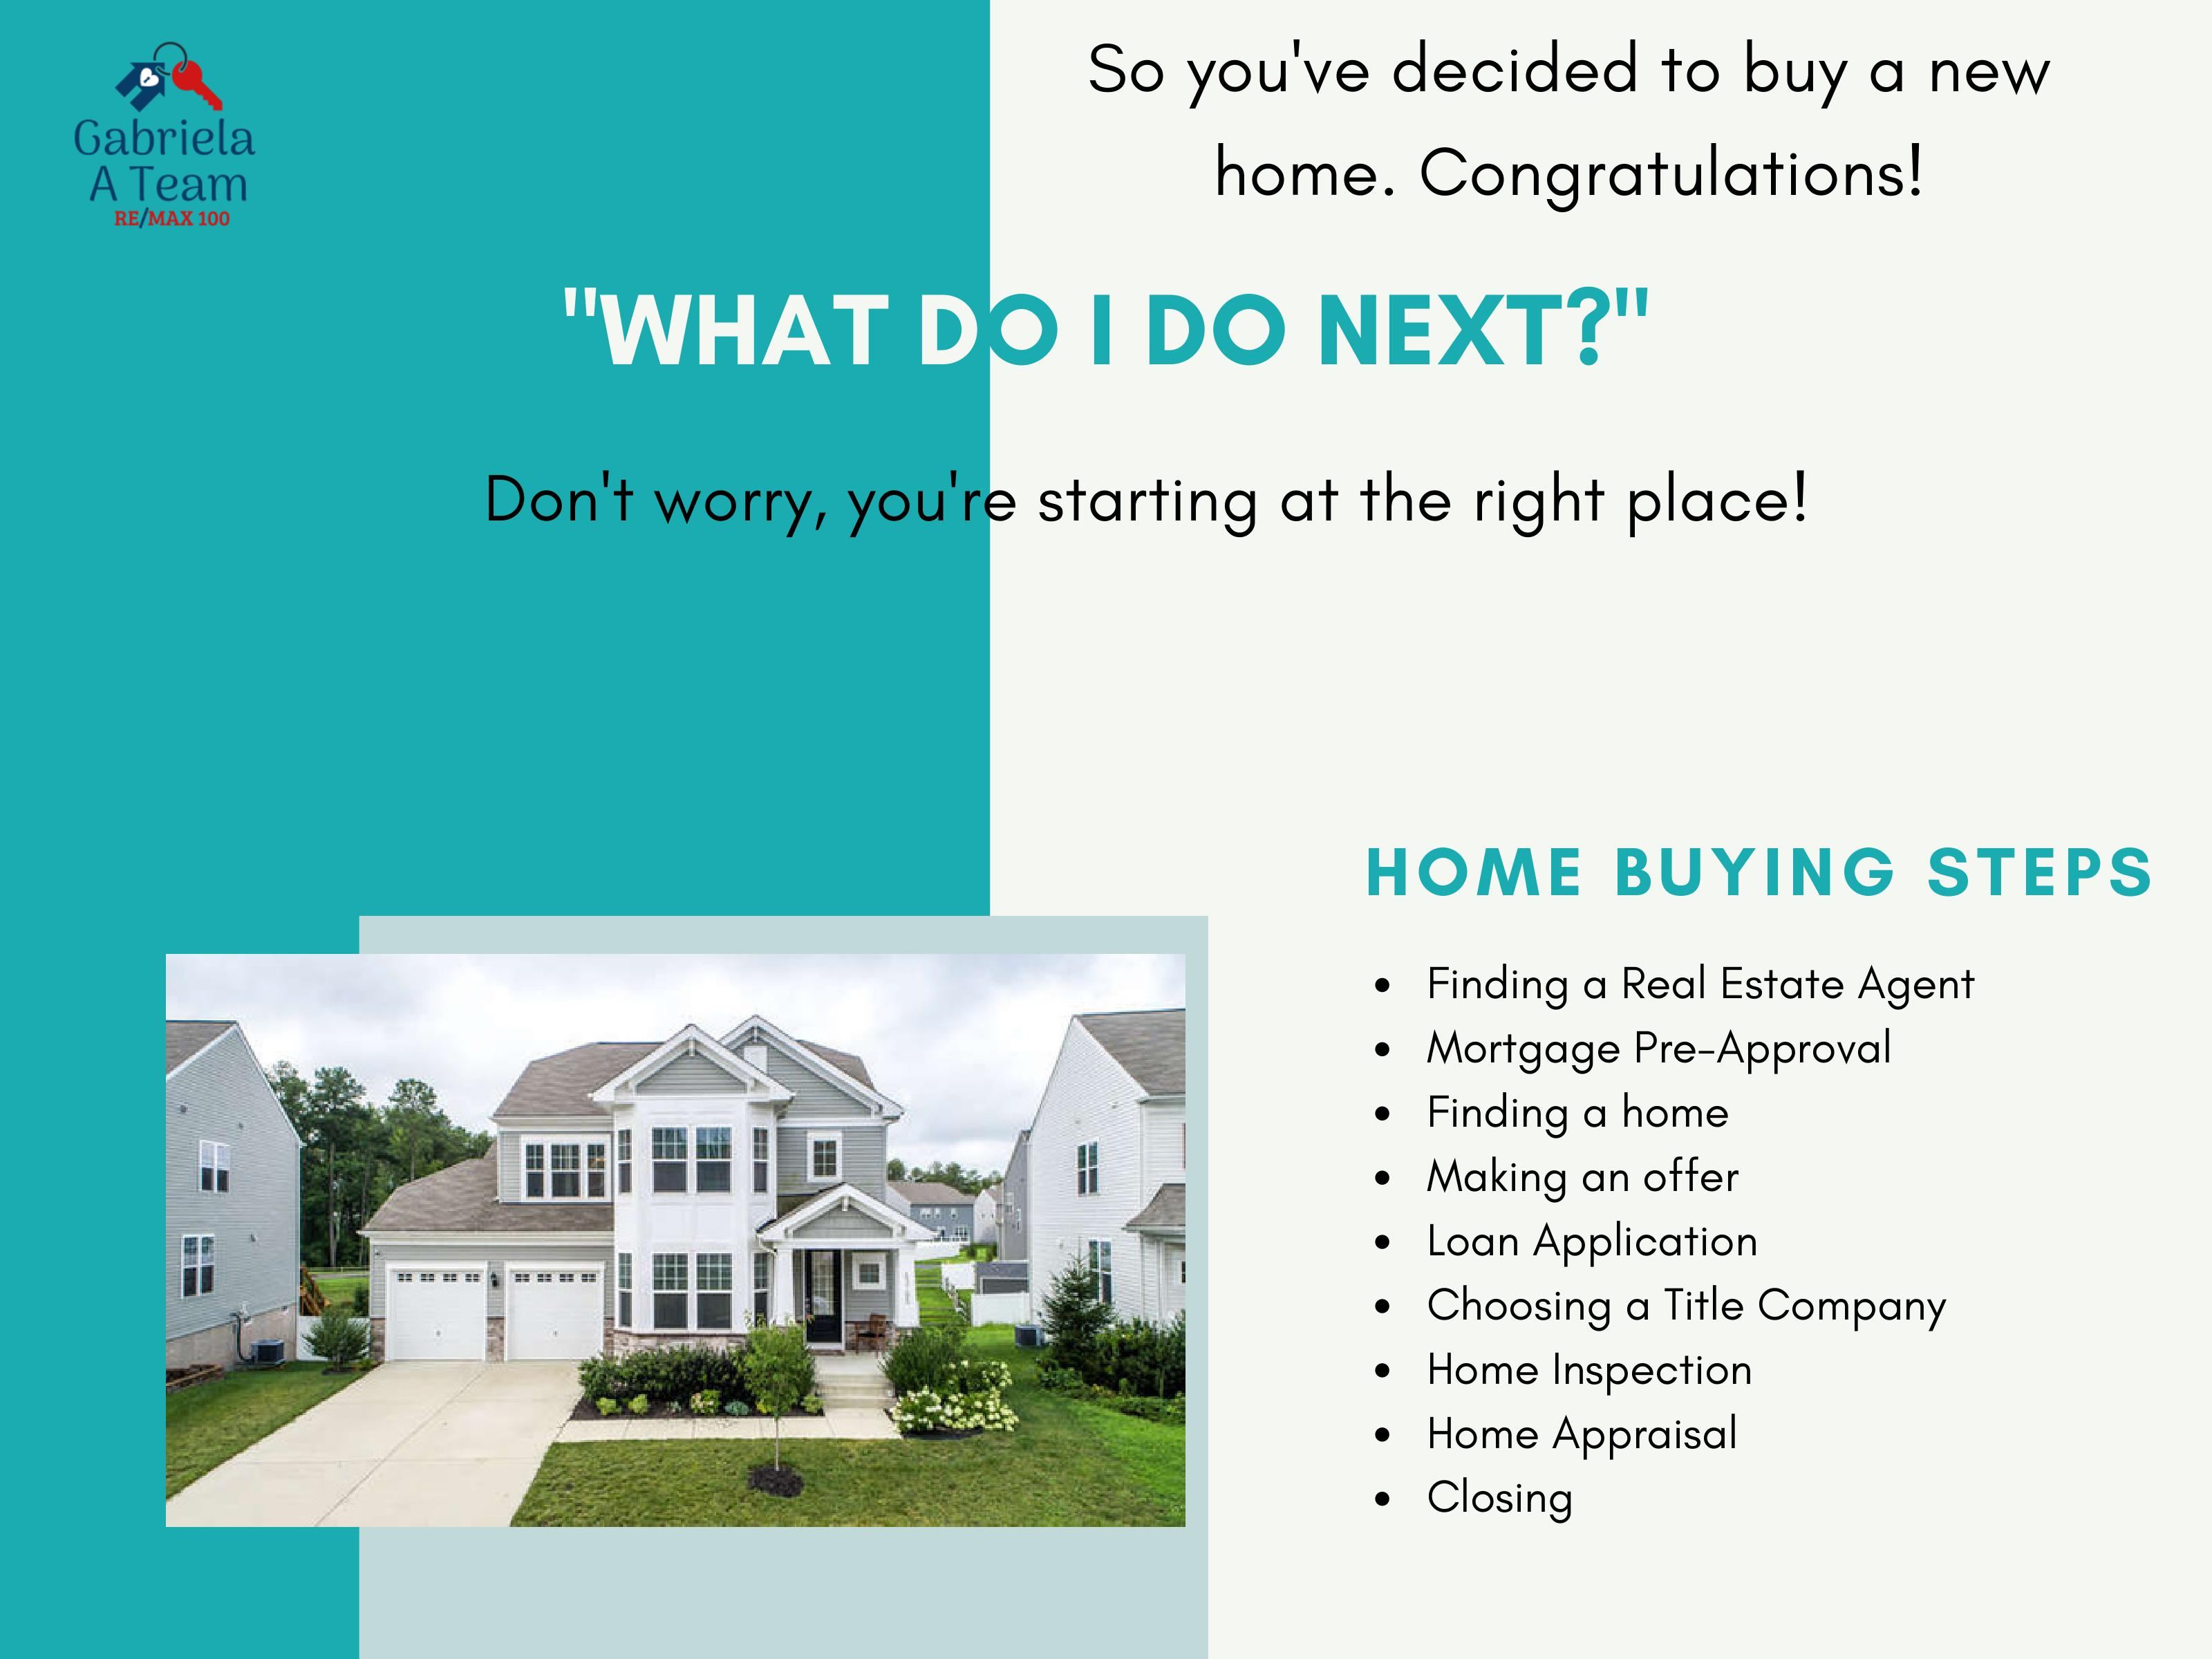 3rd slide of home buying guide with steps